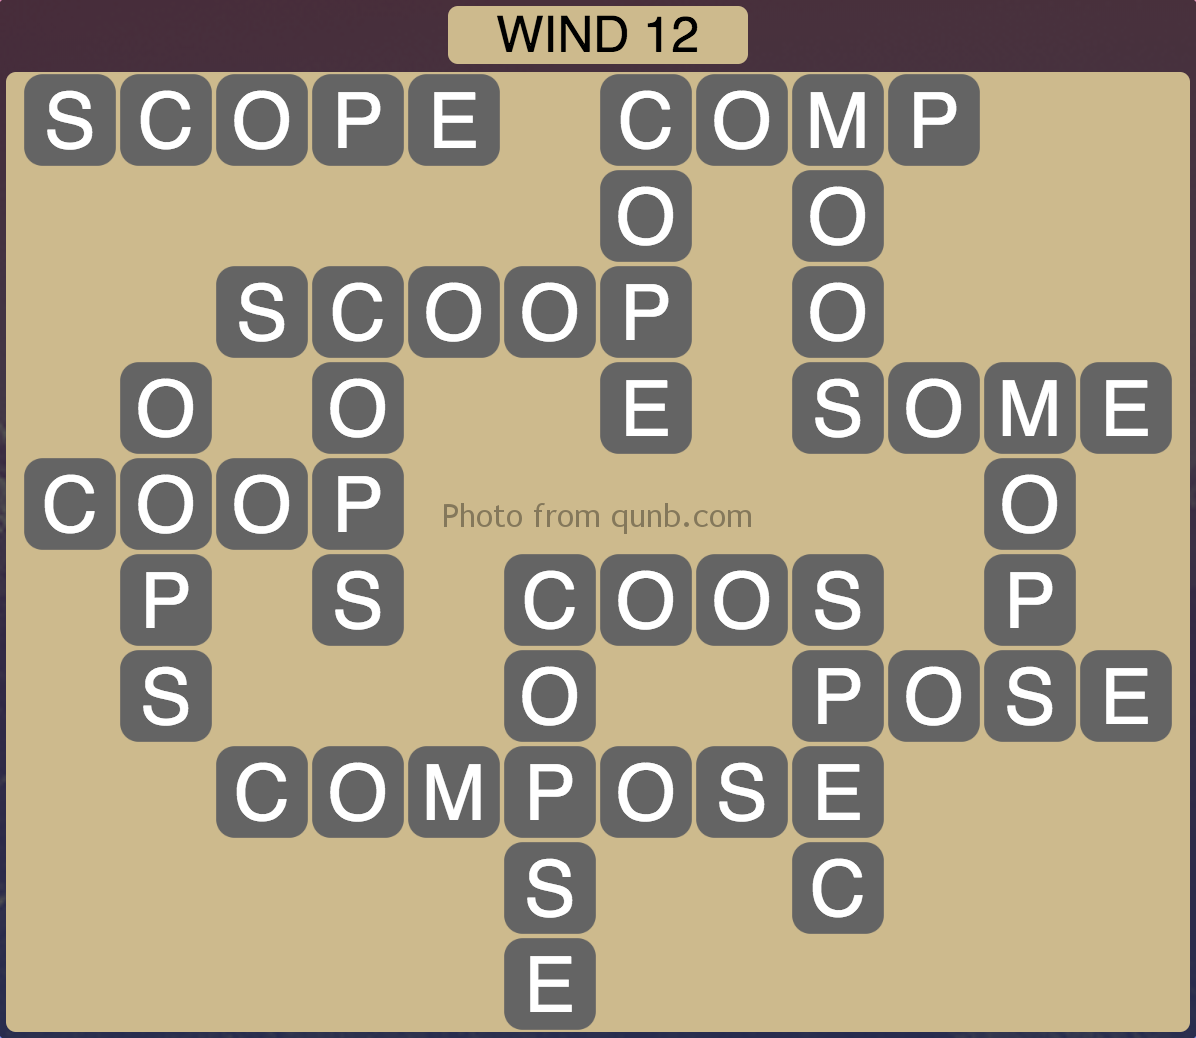 Wordscapes Wind 12 (Level 940) Answers